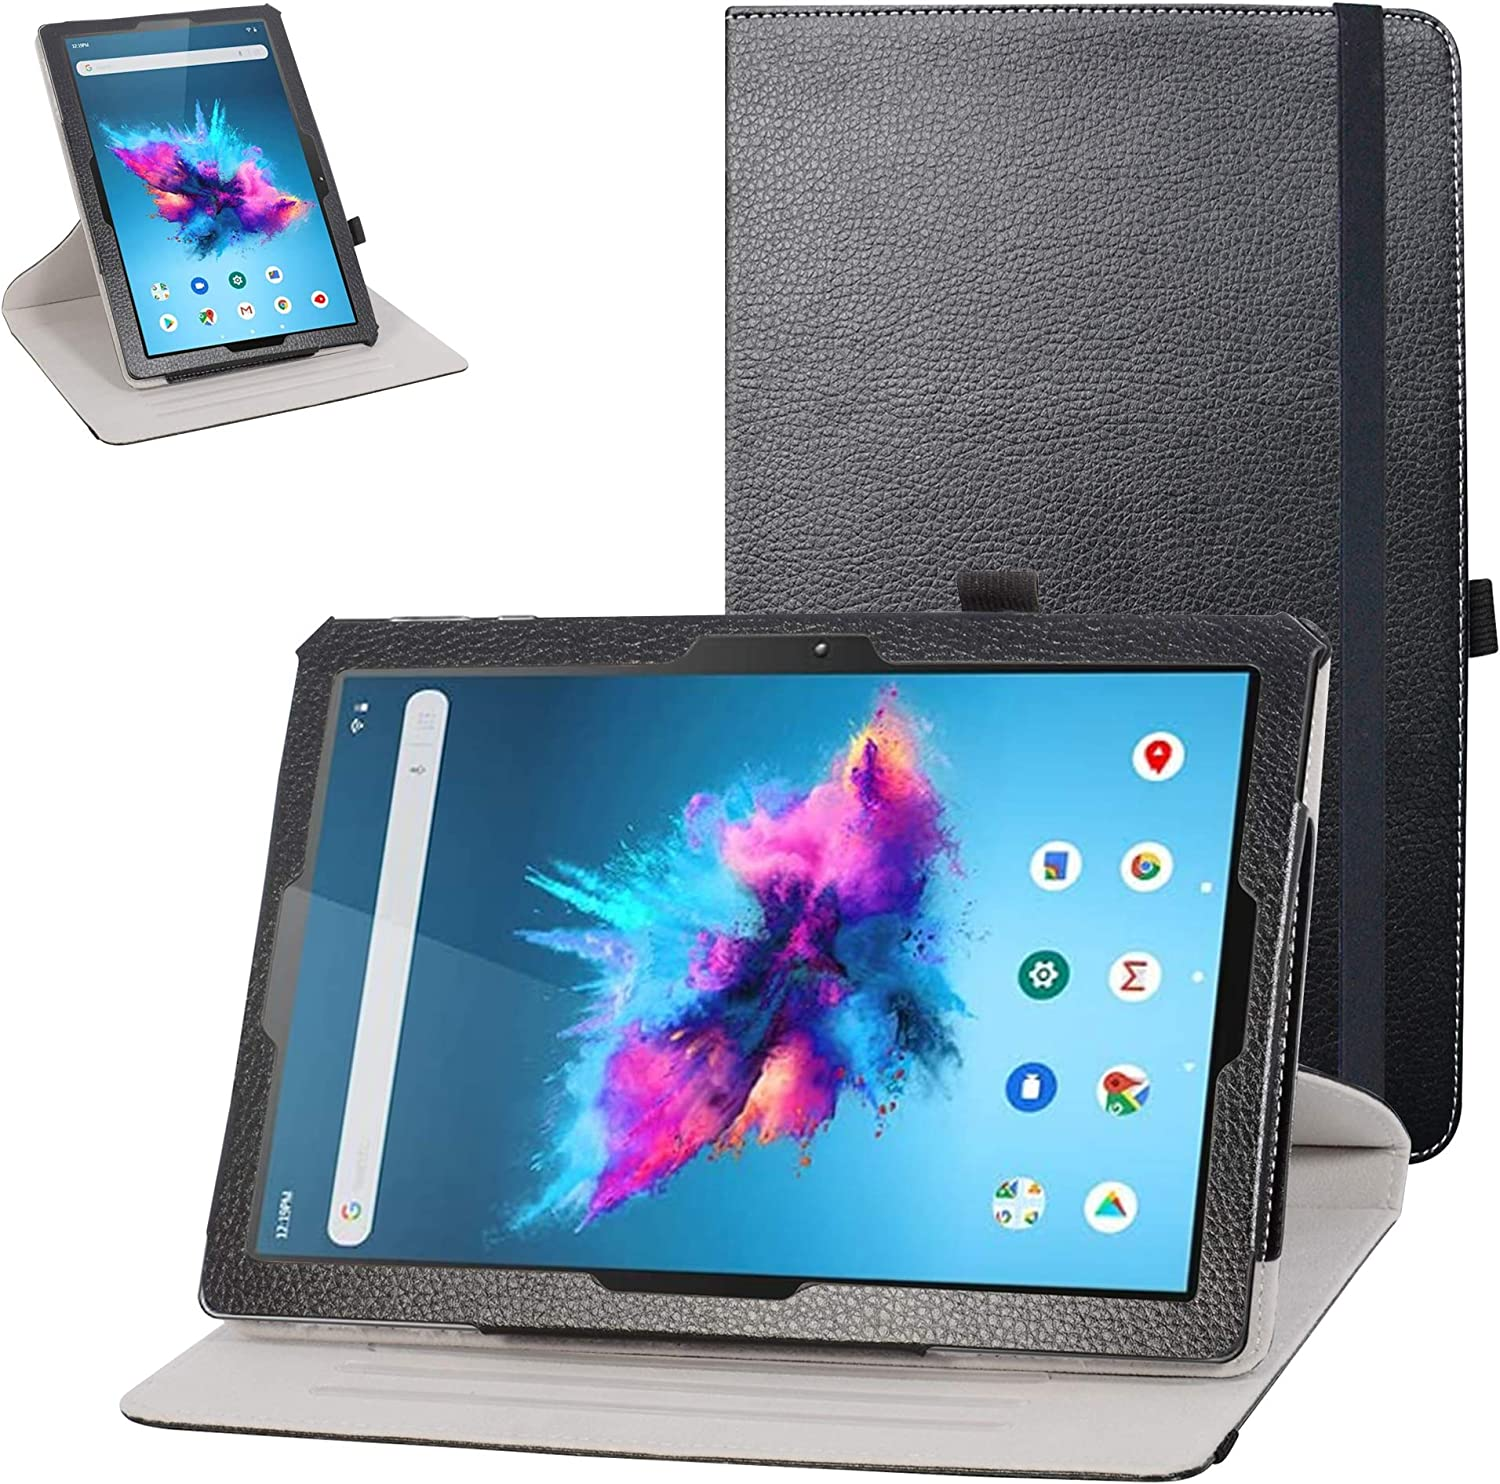 Acer Iconia One 10 B3-A40 Rotating Case,Mama Mouth 360 Degree Rotary Stand with Cute Pattern Cover for 10.1